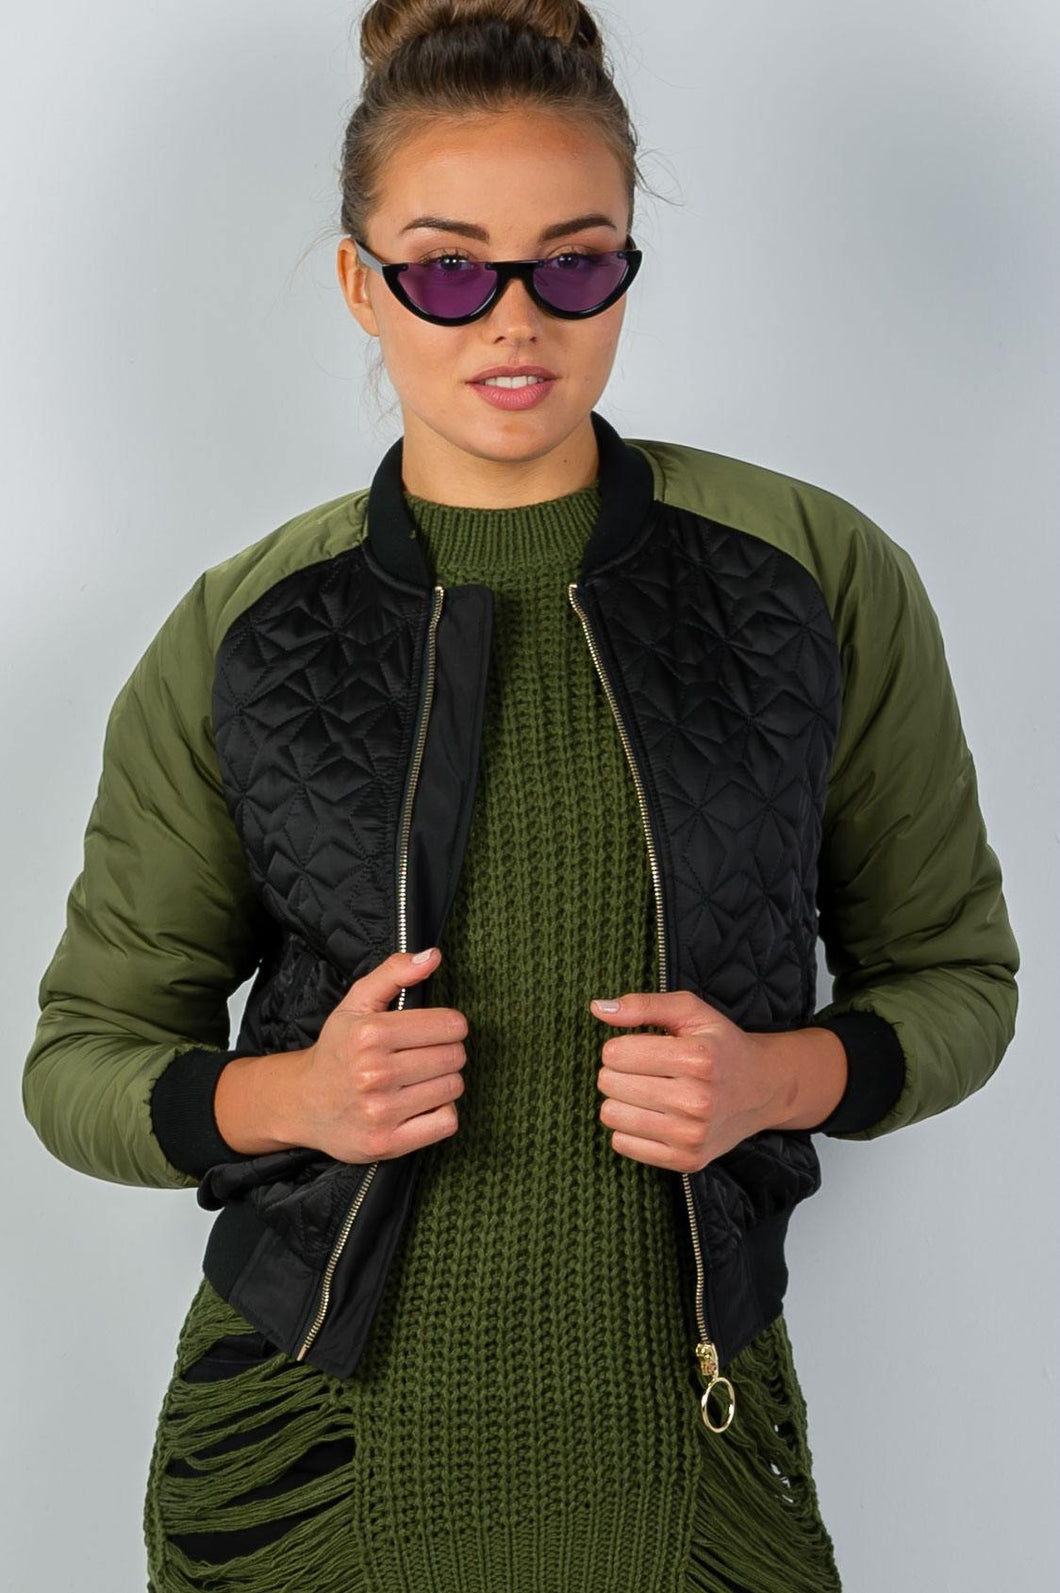 Ladies fashion black & olive quilted bomber jacket - comfy-cozy18